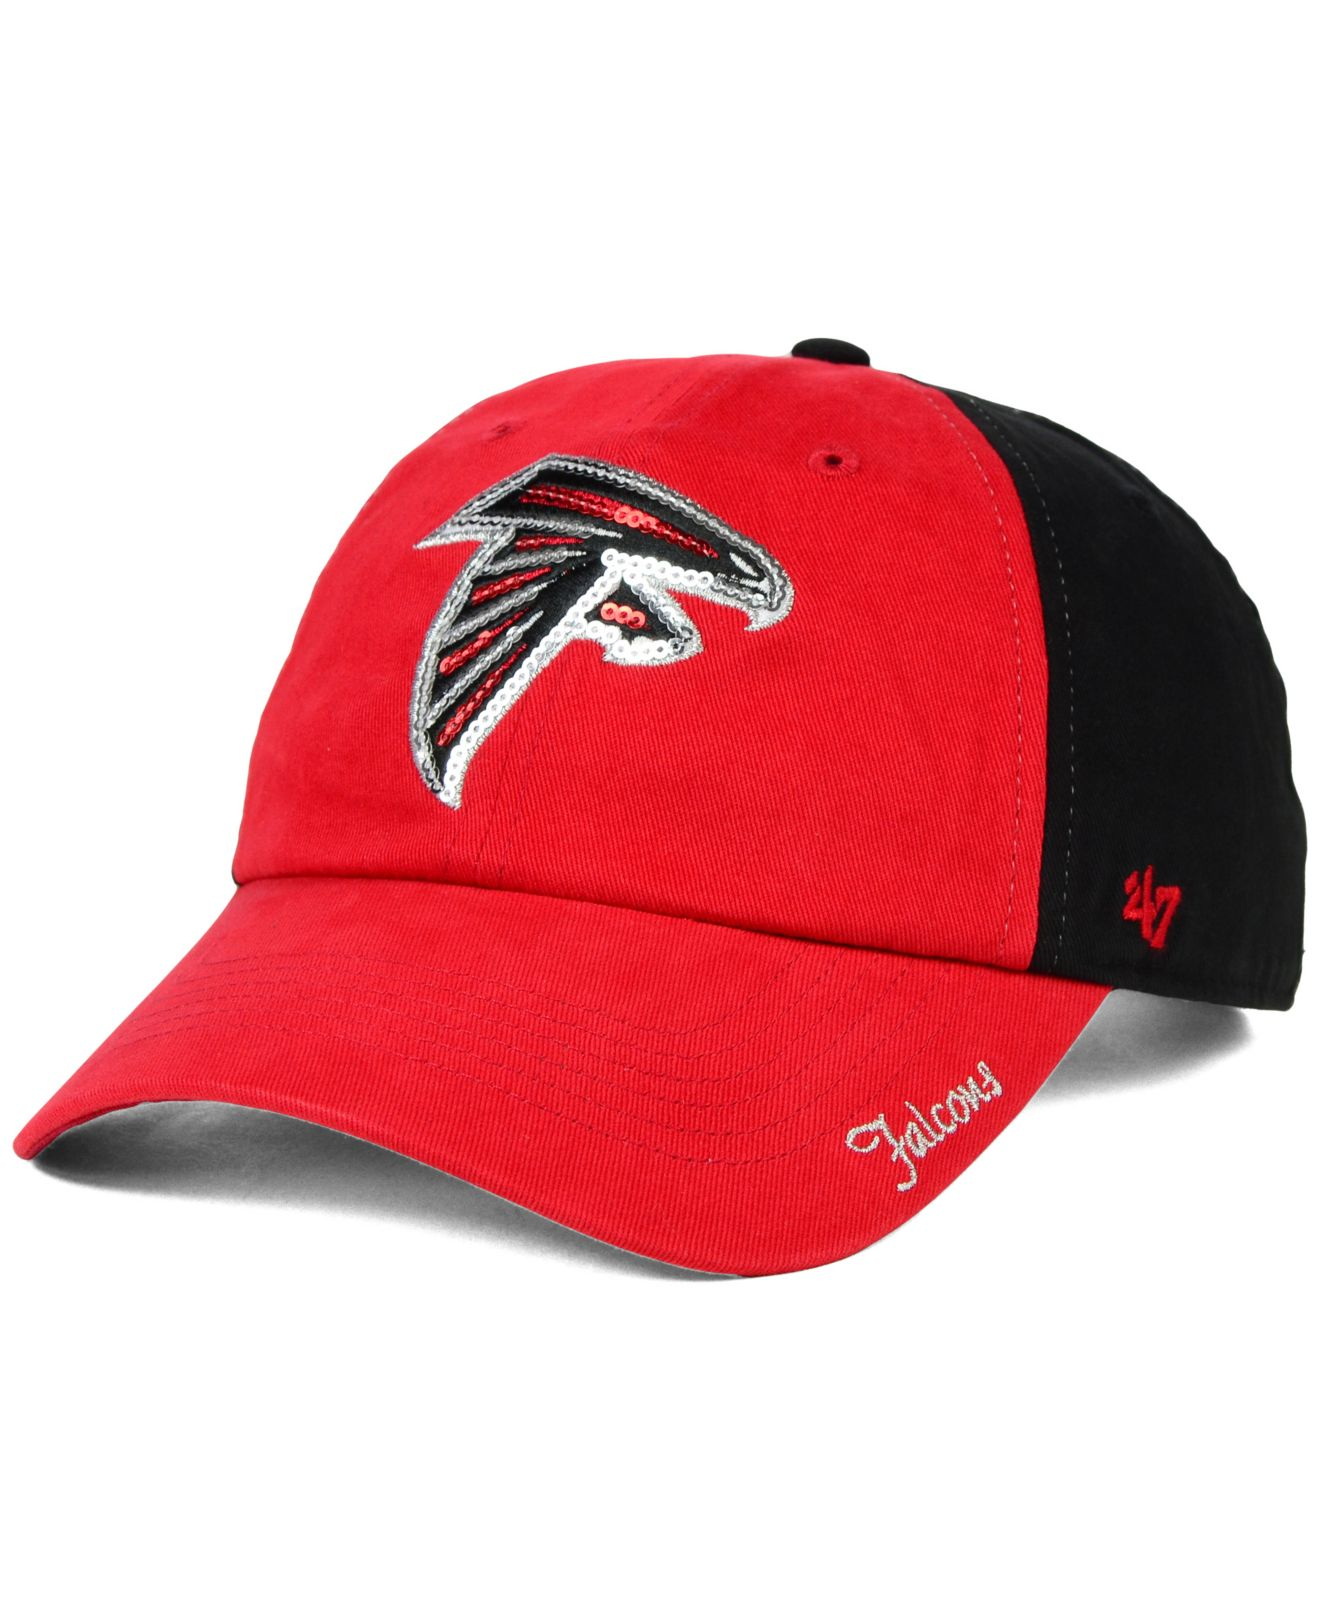 Women's Atlanta Falcons '47 Black Sparkle Knit Beanie